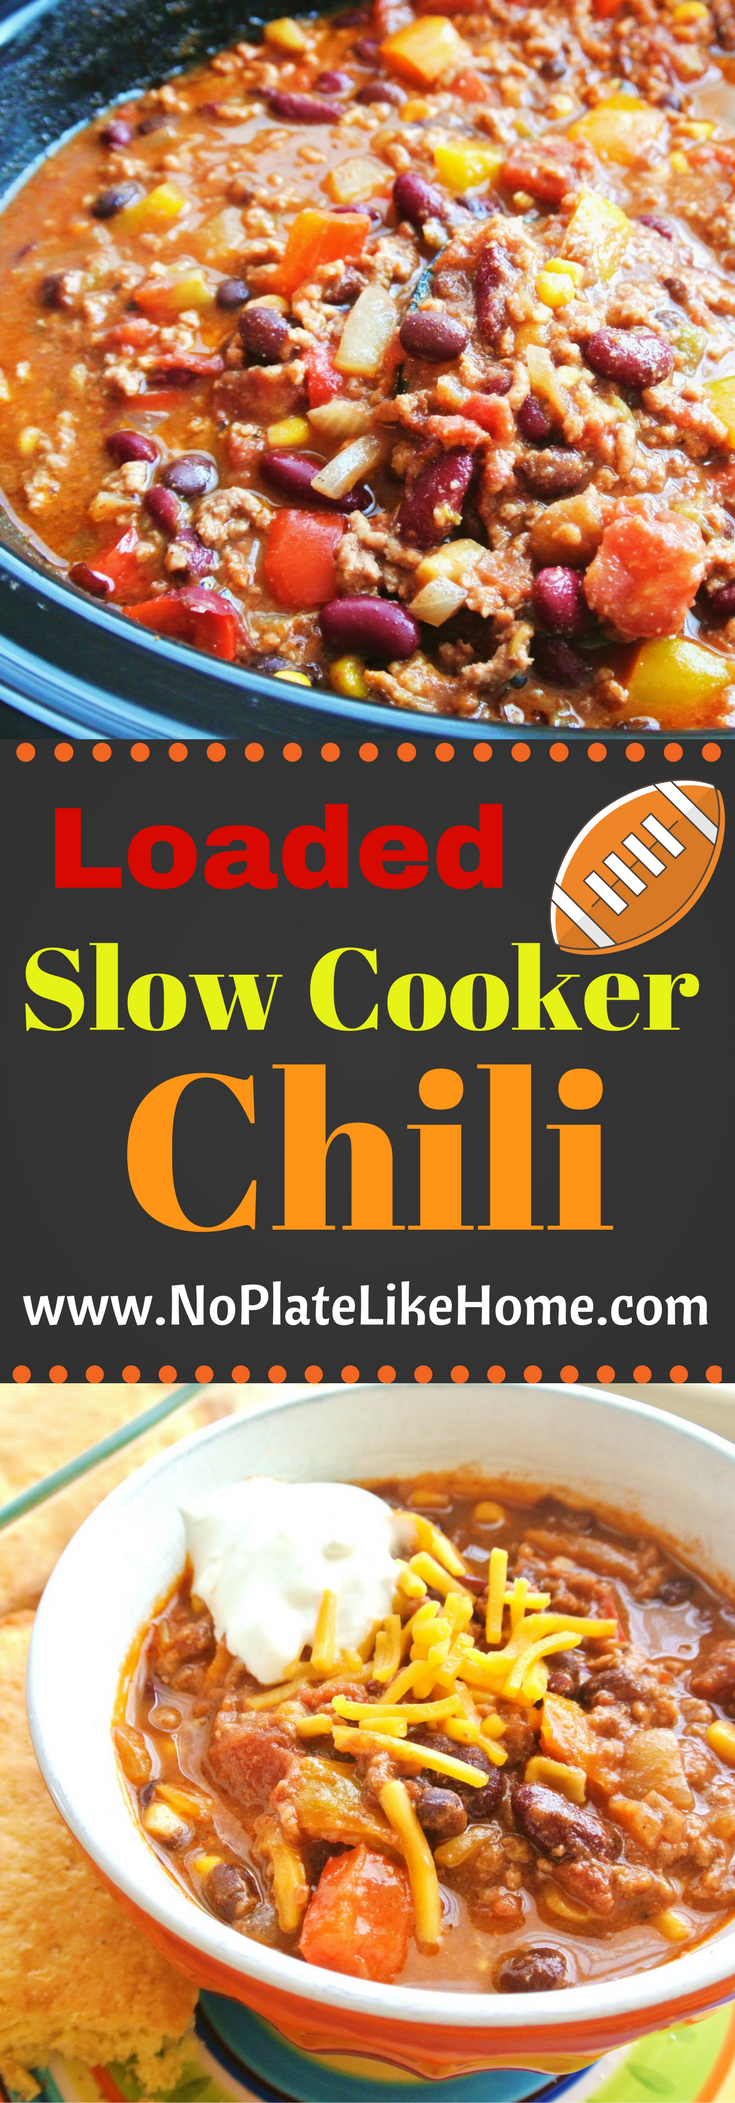 Loaded Slow Cooker Chili A Tasty Homemade And Easy 5 Hr Slow Cooker Chili Loaded With Groun Slow Cooker Chili Recipe Slow Cooker Chili Chili Recipe With Corn